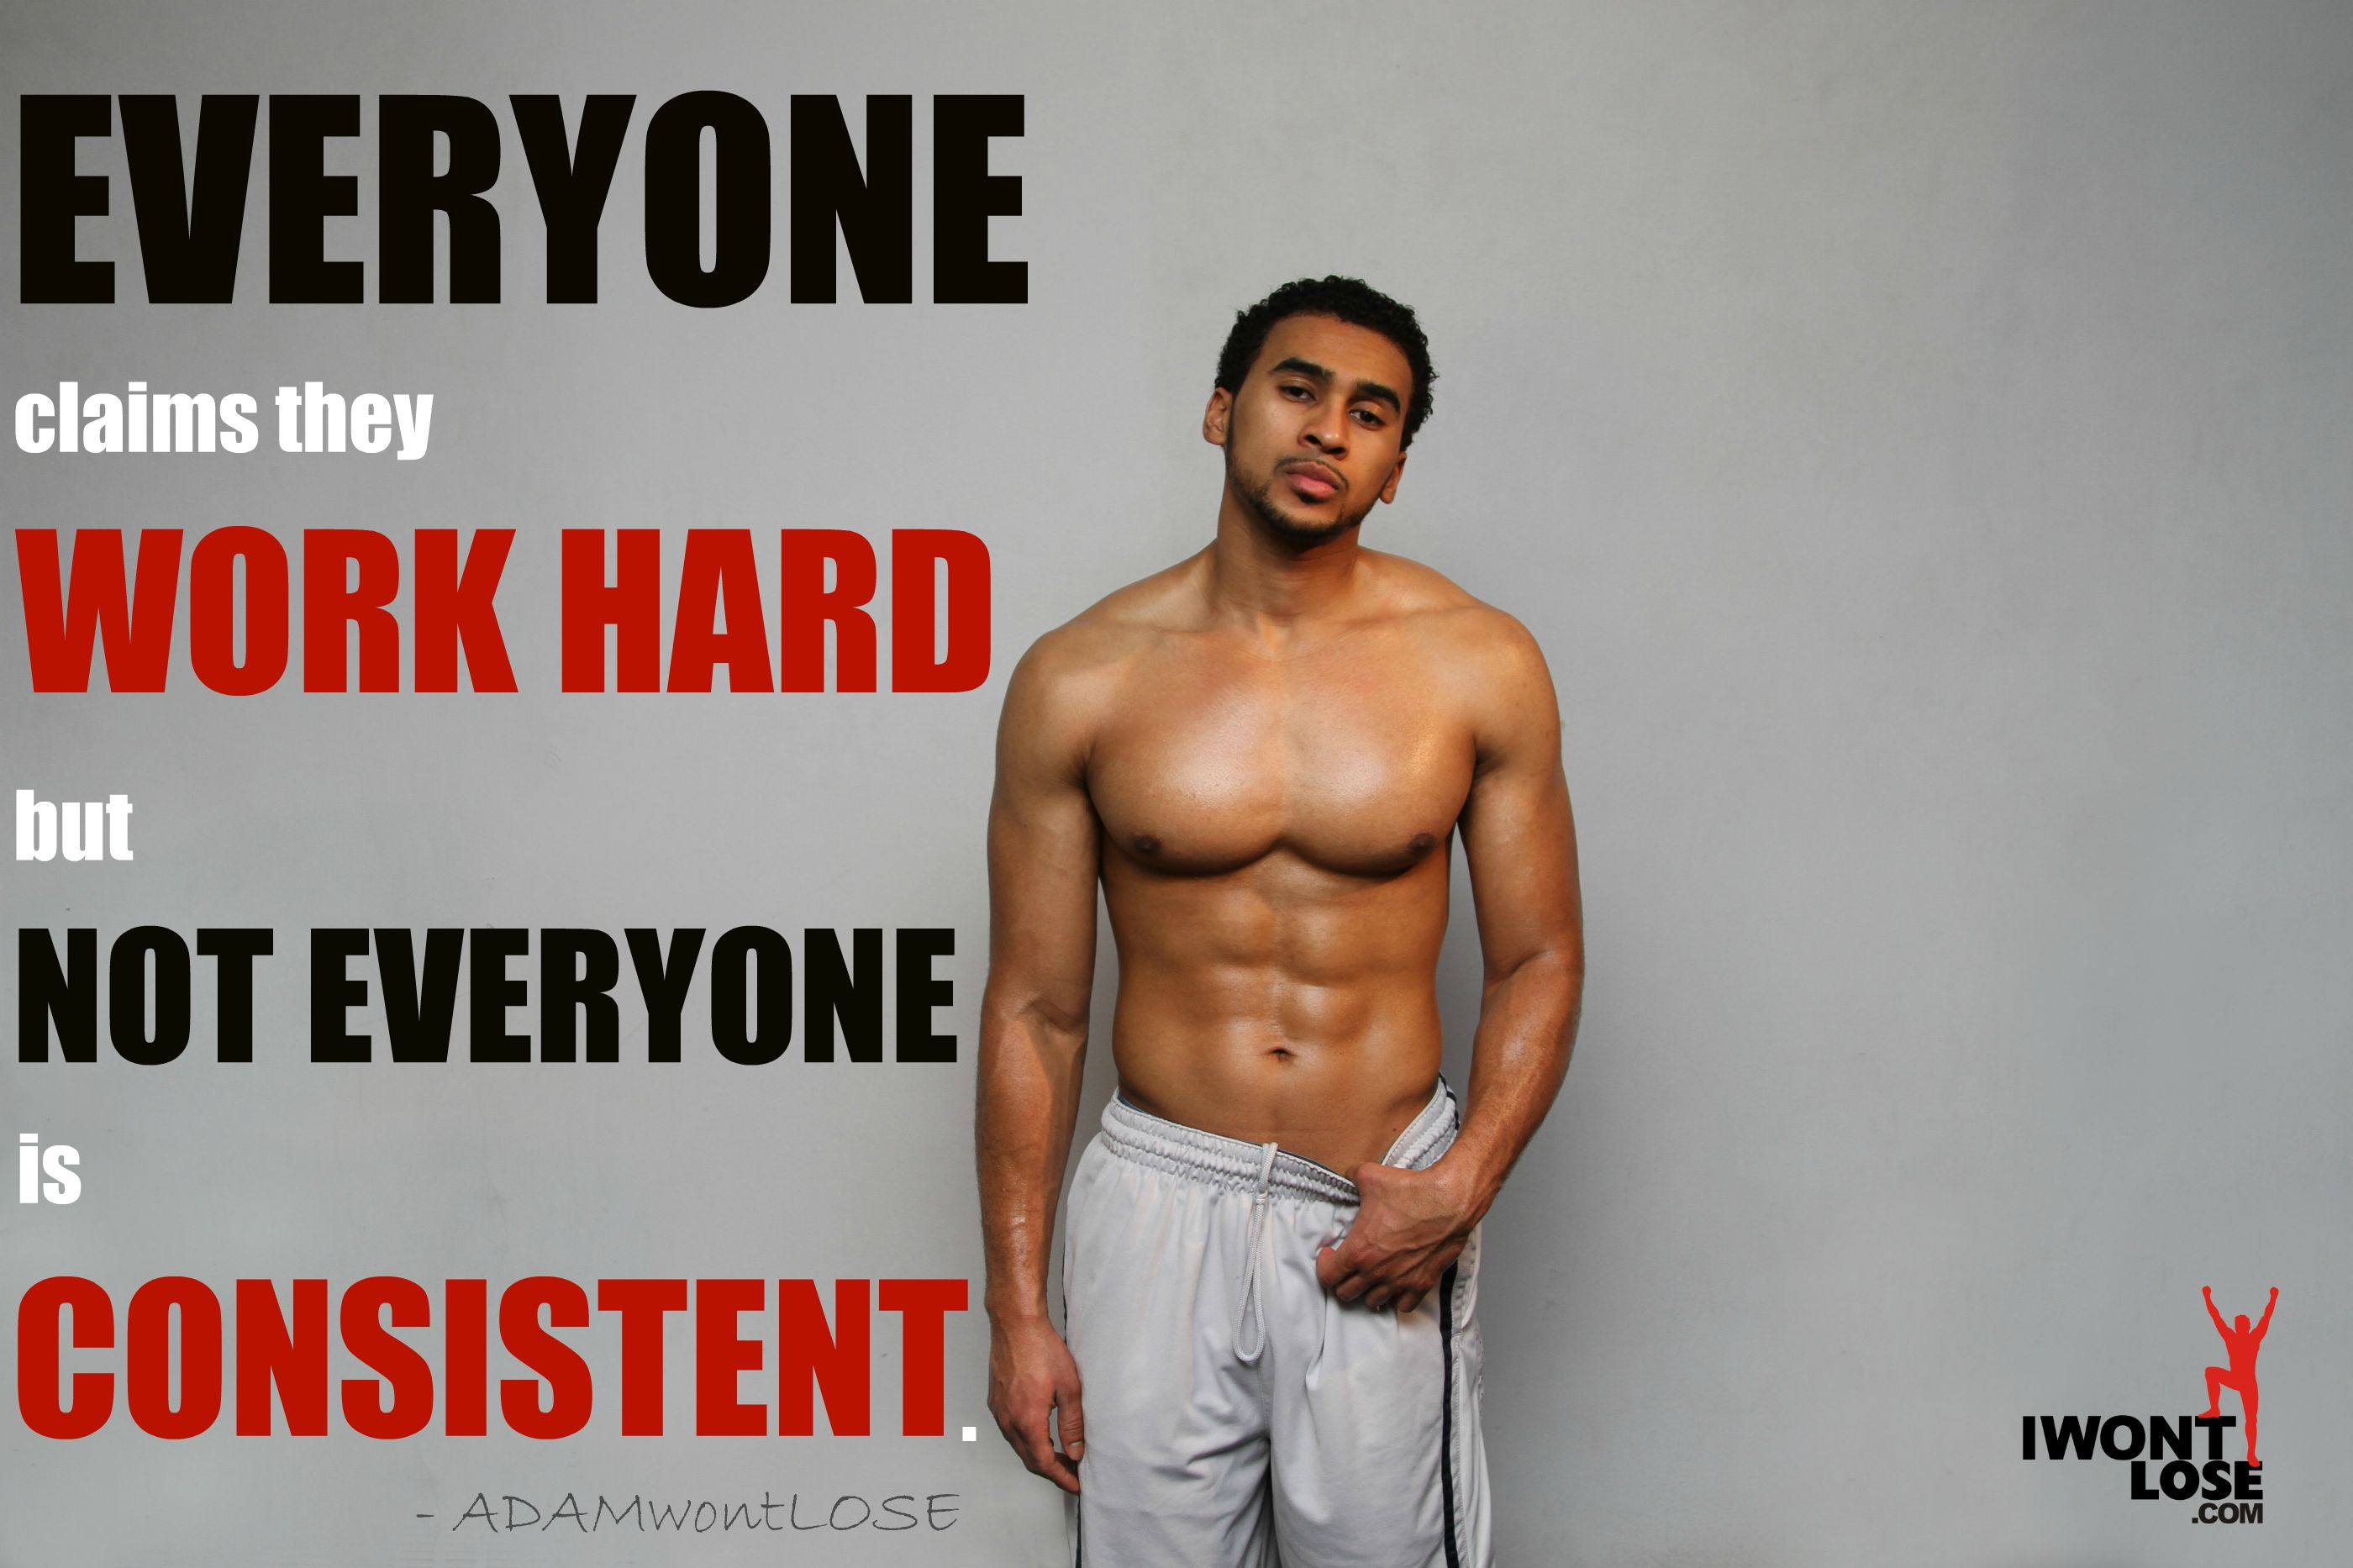 Hard Work Vs Consistency With Images